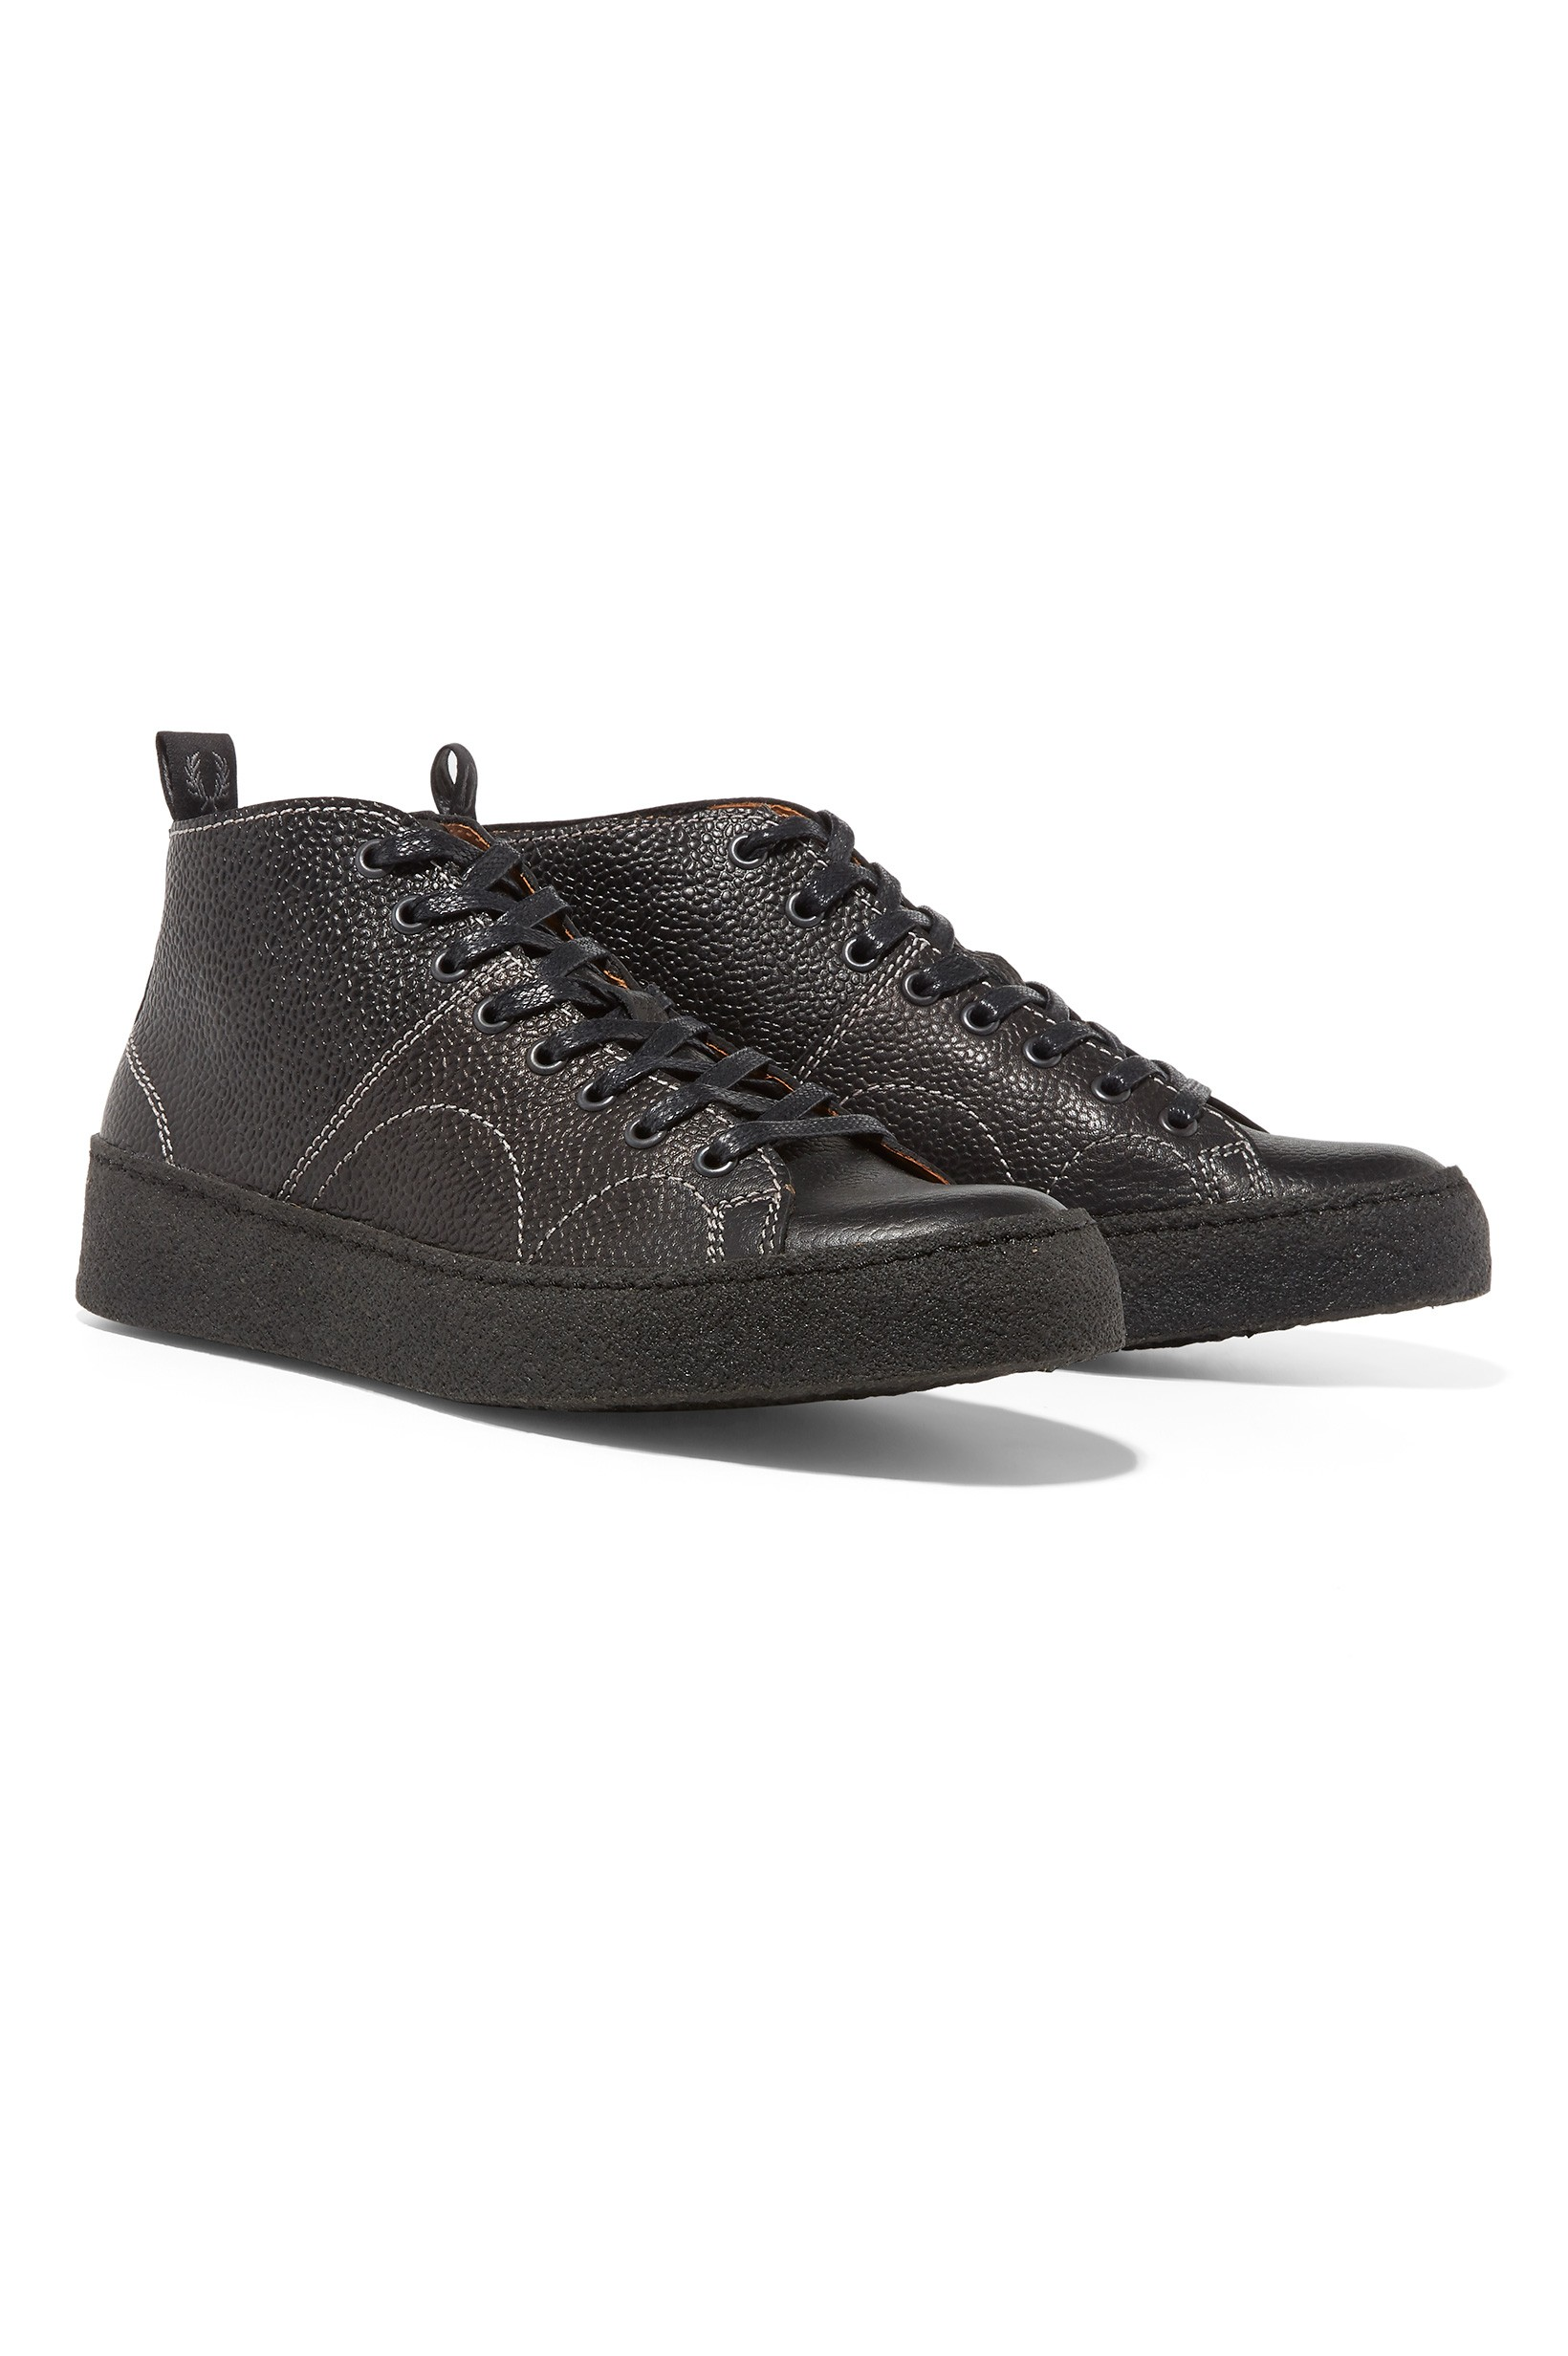 Fred Perry Black X George Cox Creeper Mid Leather